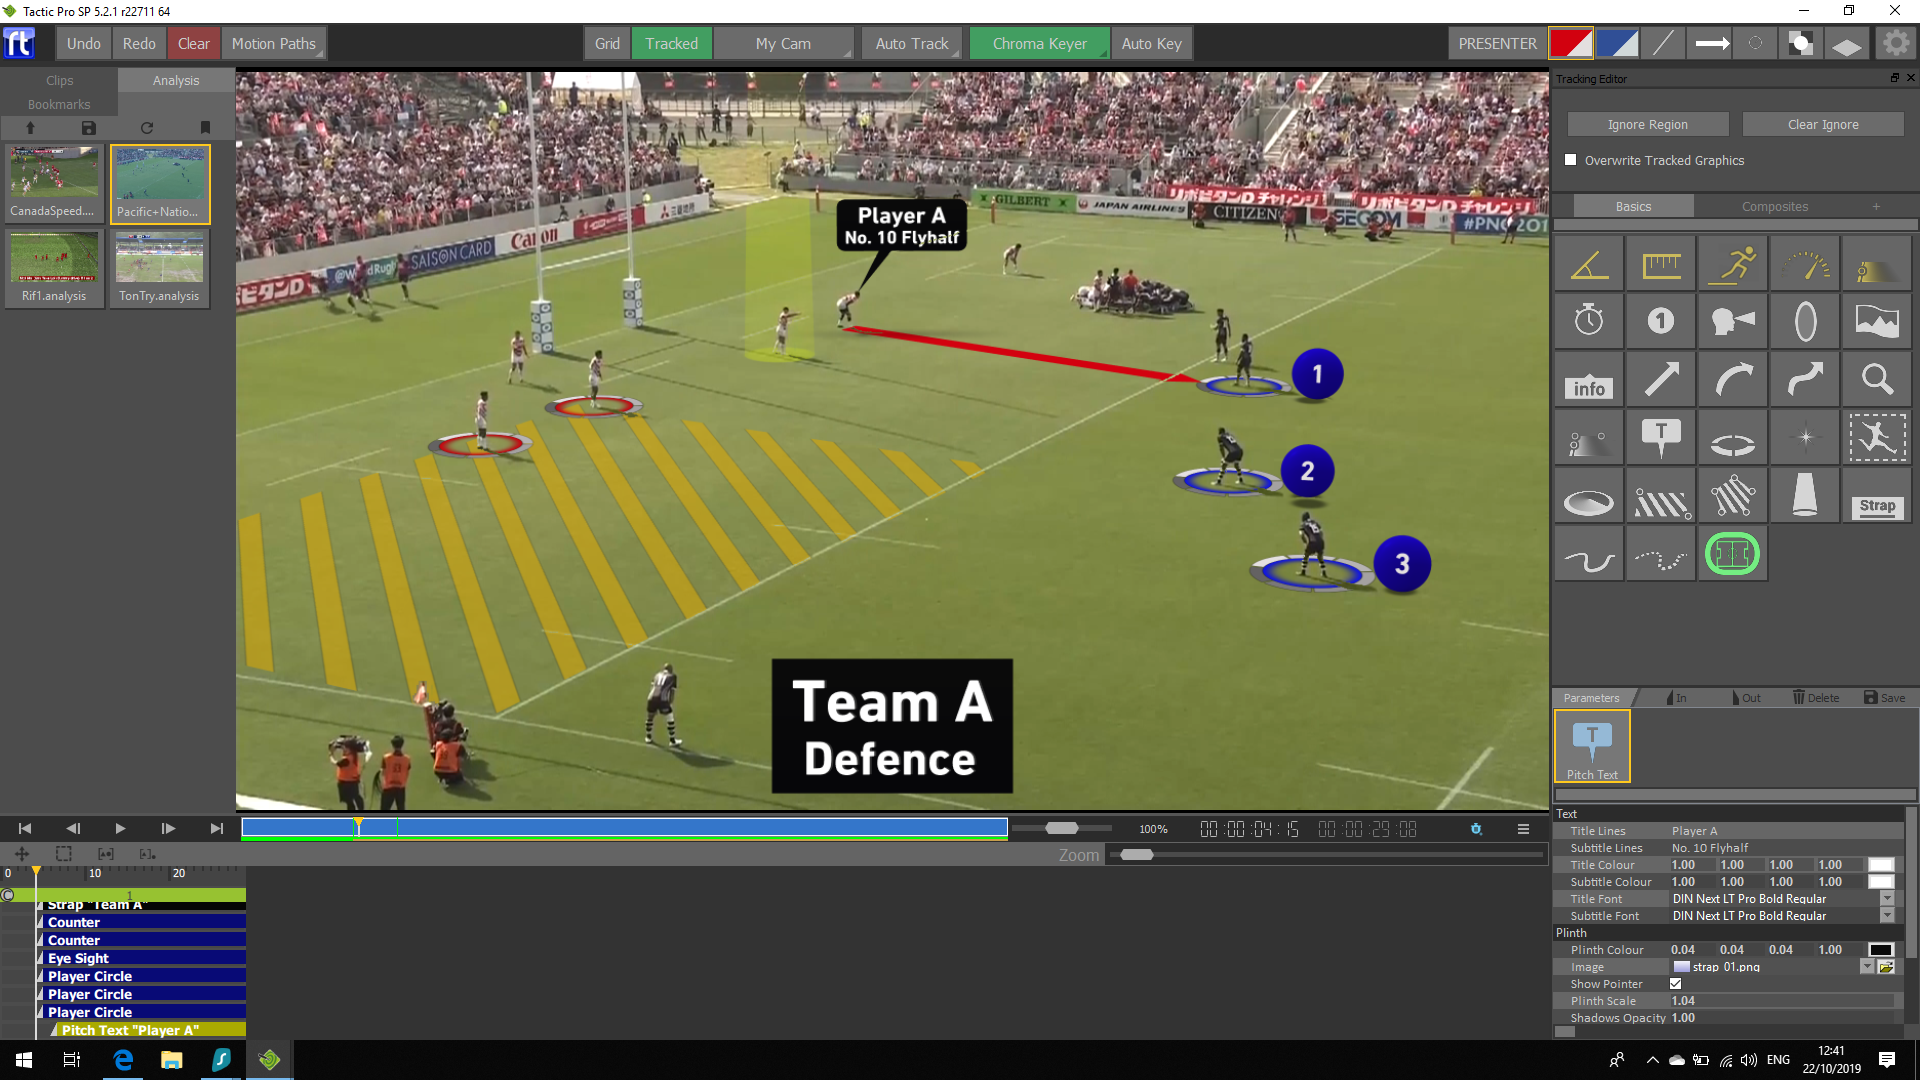 Tactic - Sport Video Analysis